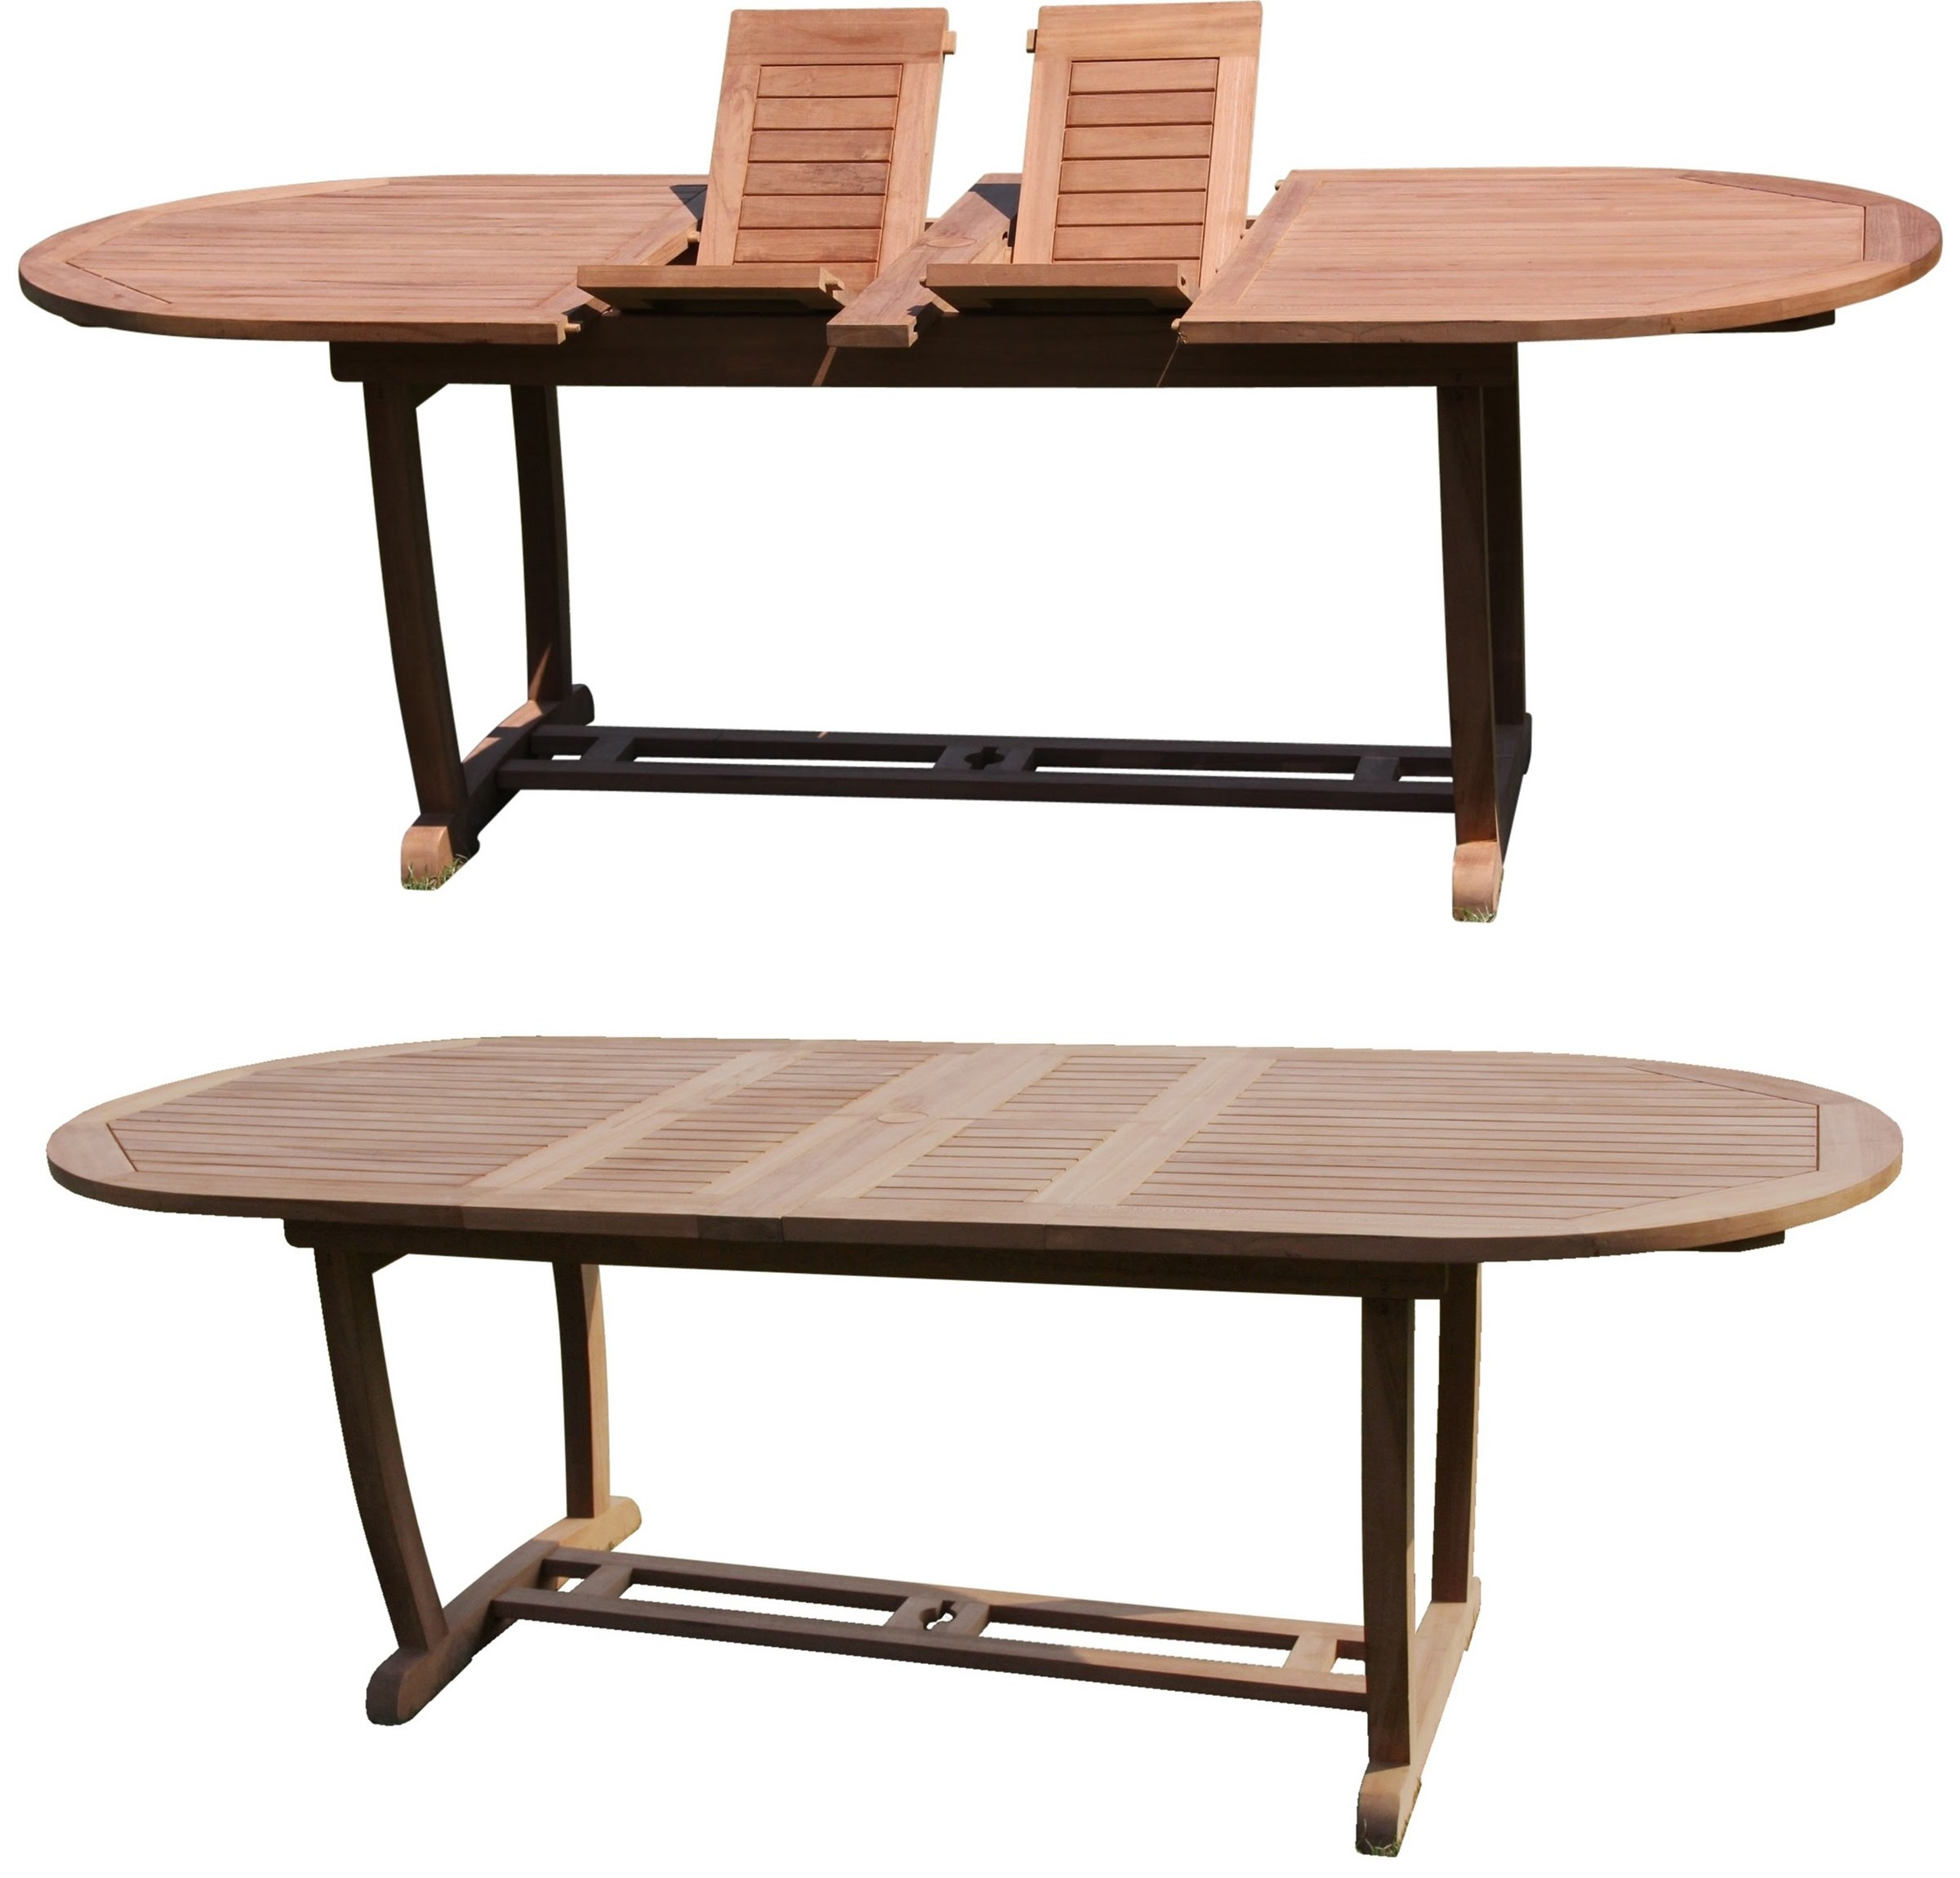 ron oval iron wrought hole woodard zm with dining spoke table patio x product tables umbrella